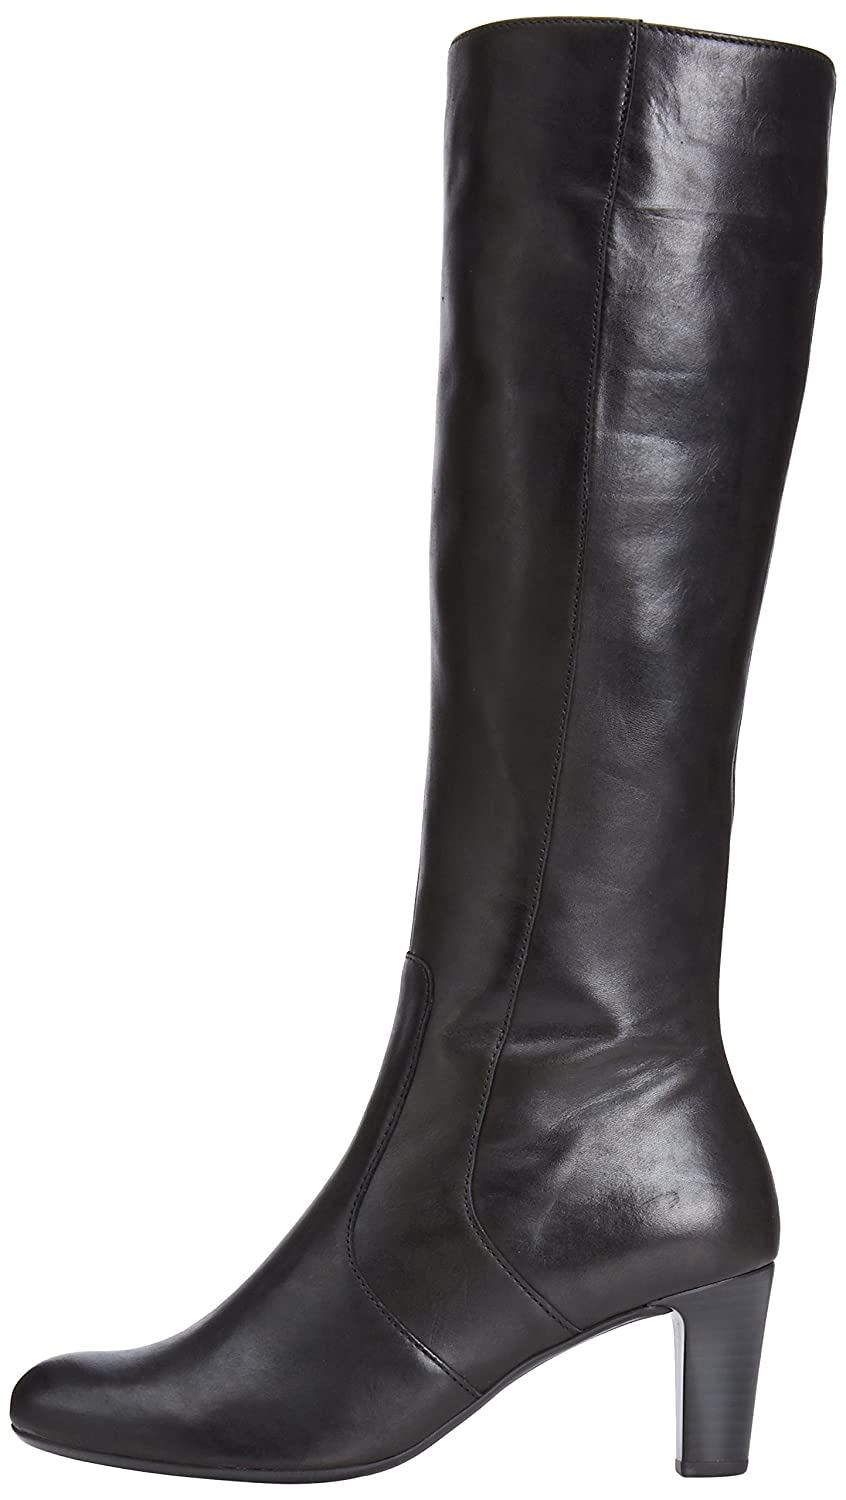 441782ee10c Gabor Womens Maybe Slim L Boots 95.668.27 Black 7 UK